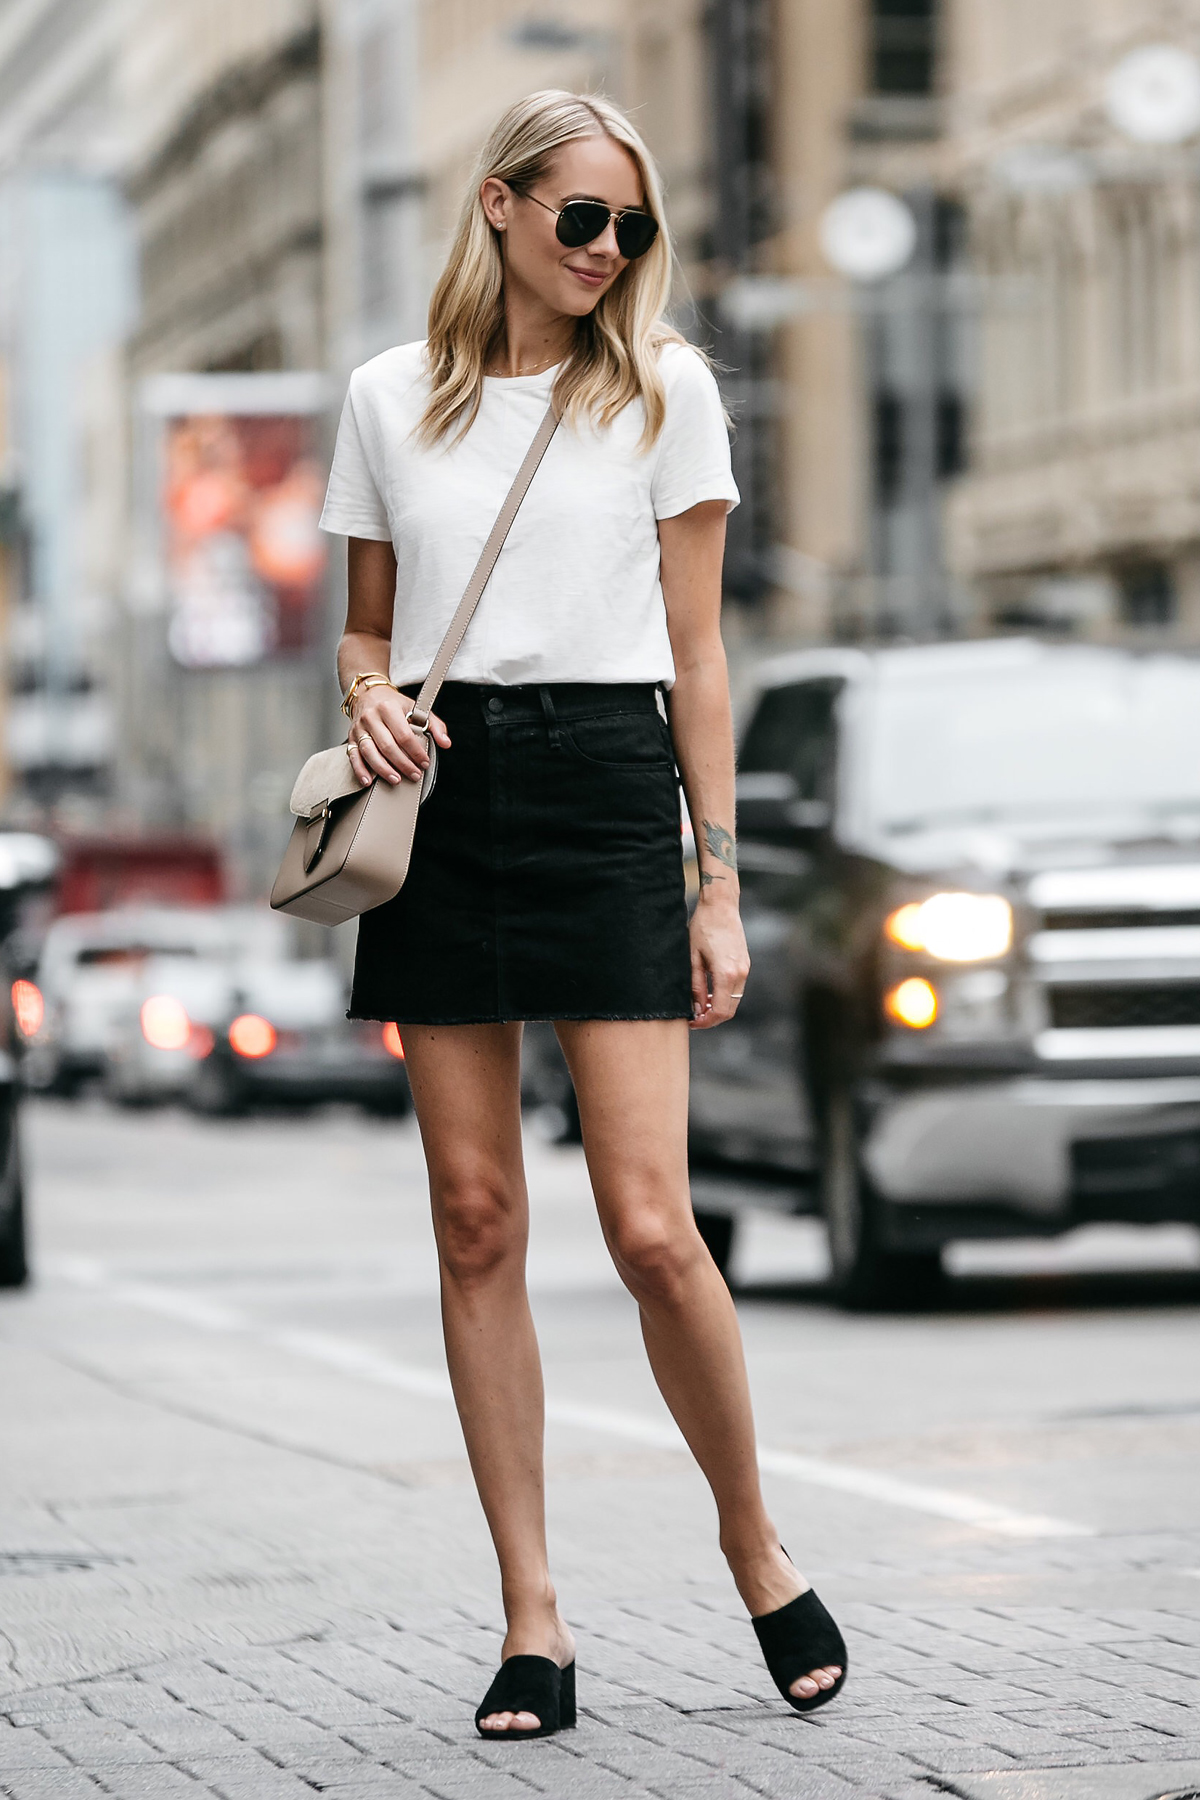 A CASUAL WAY TO WEAR A BLACK DENIM SKIRT | Fashion Jackson